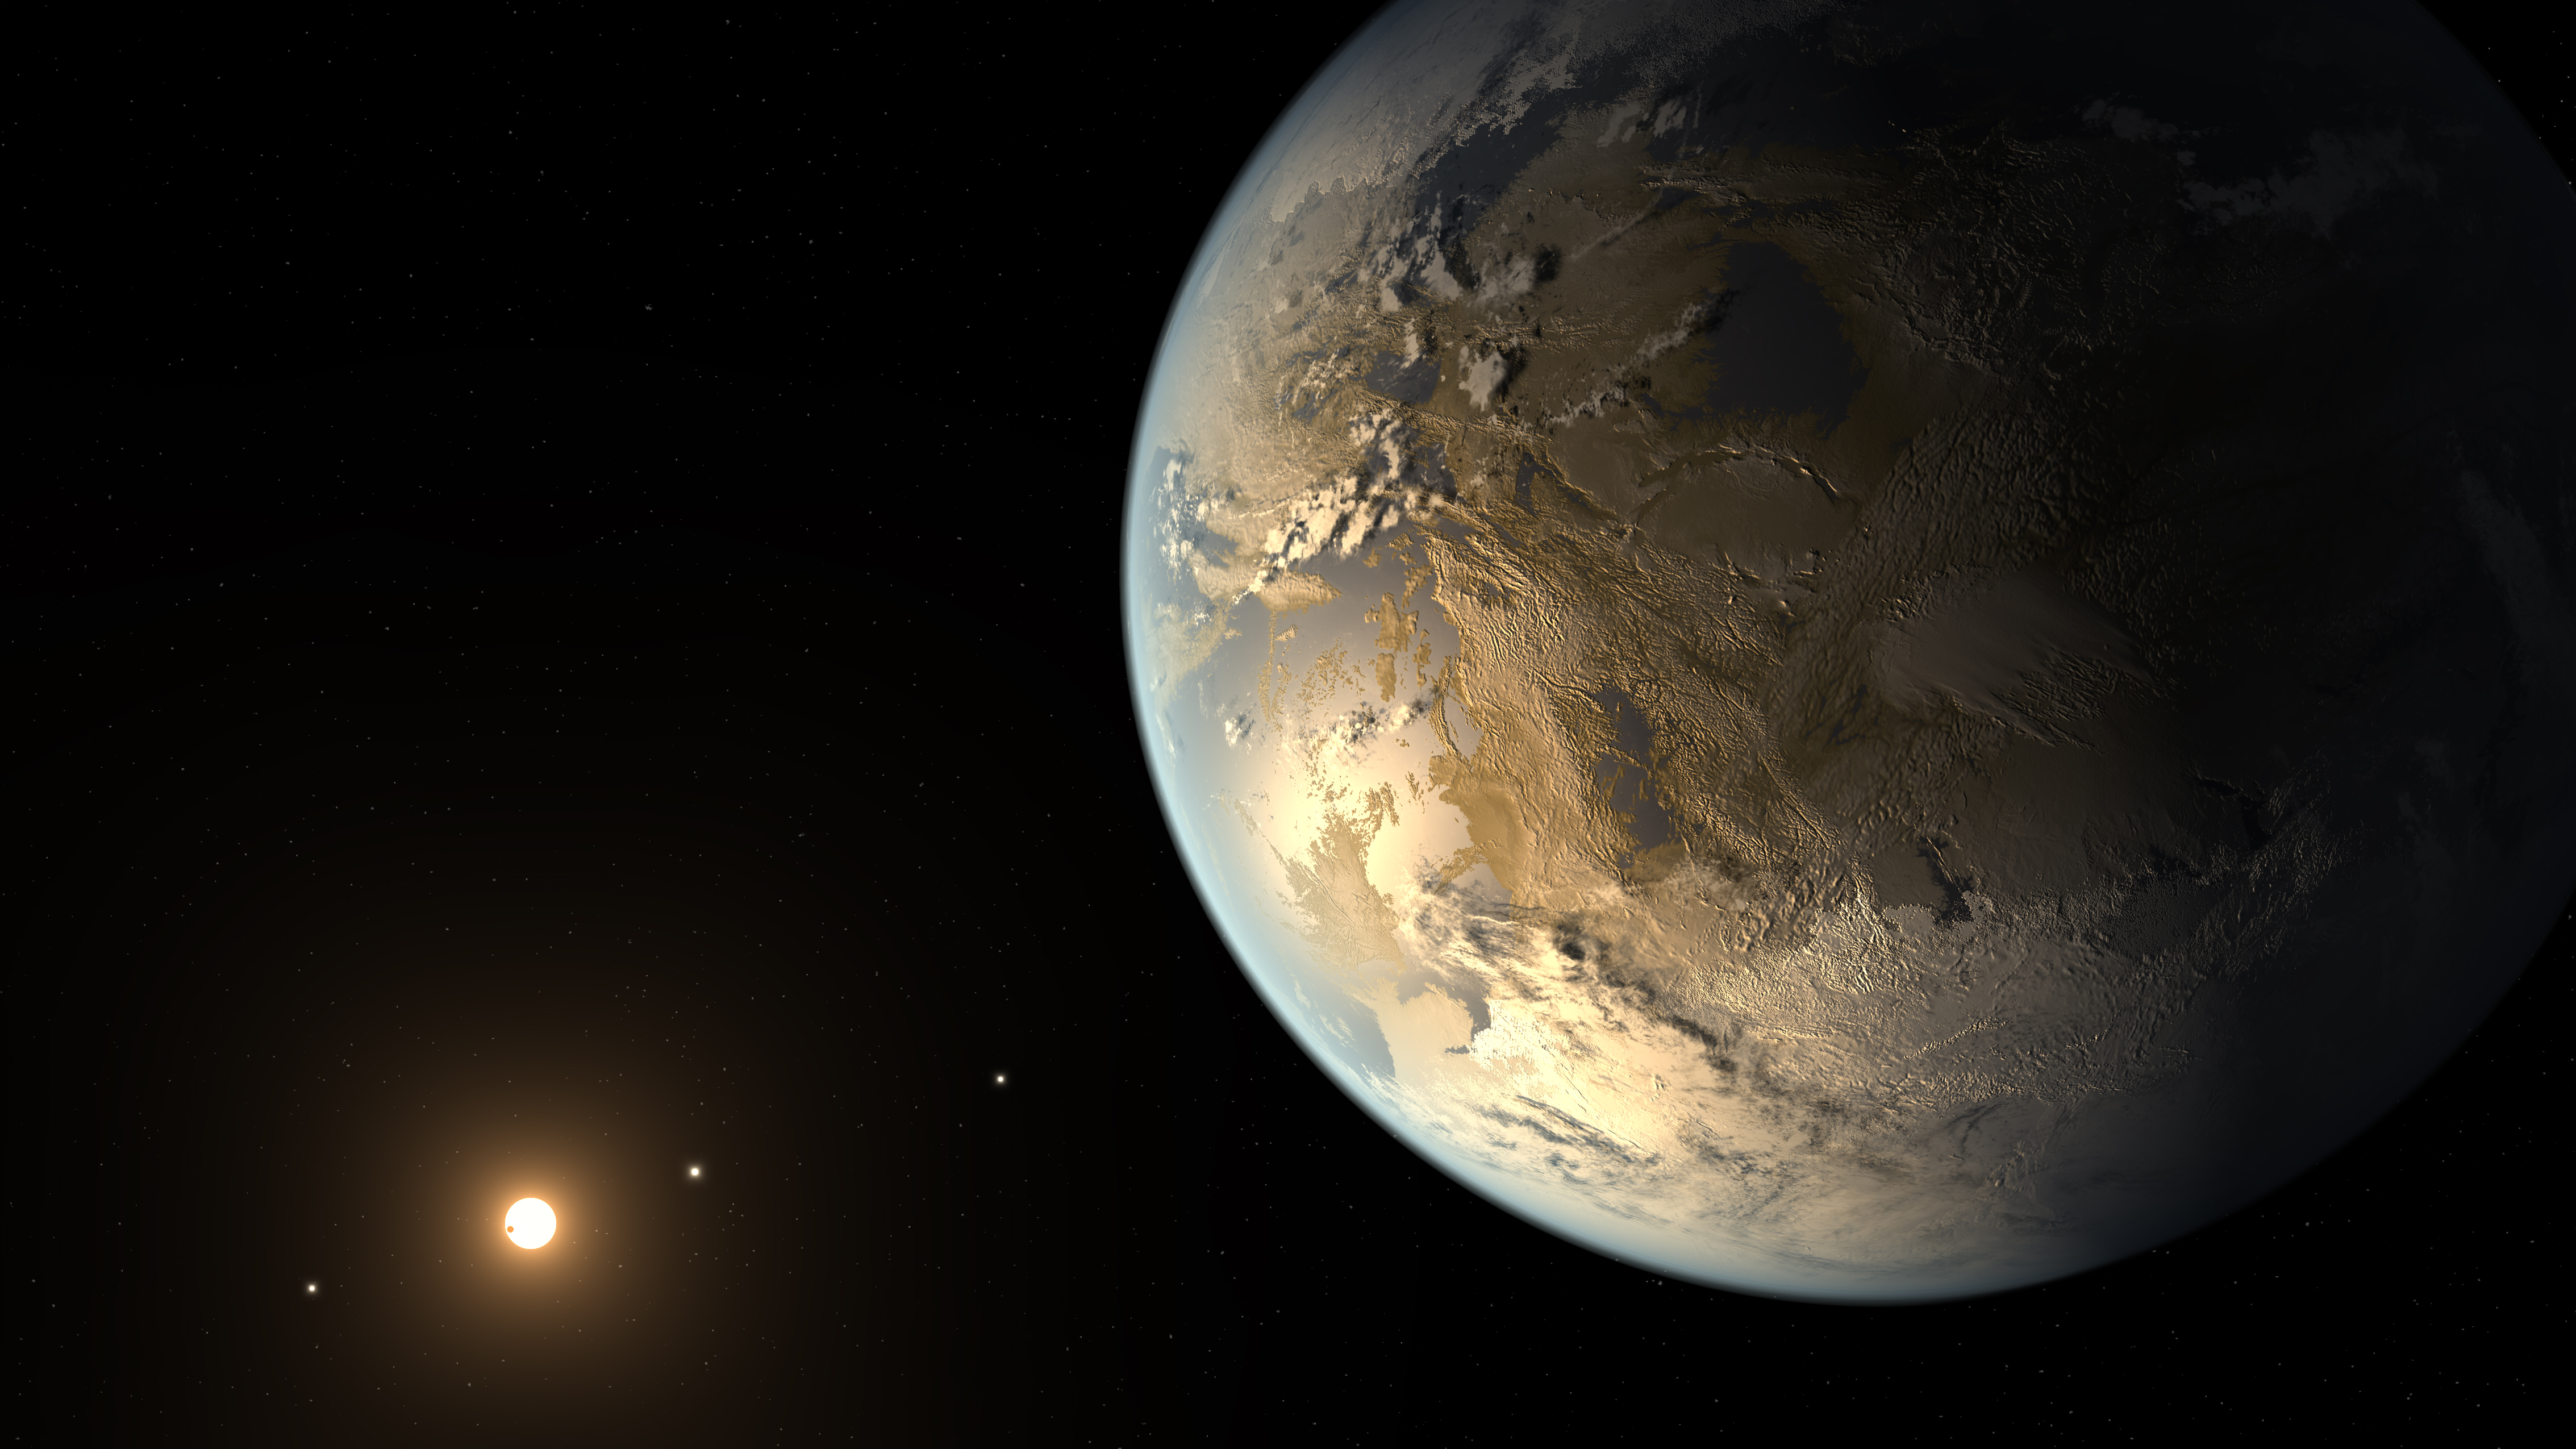 Artist's rendering of a new planet